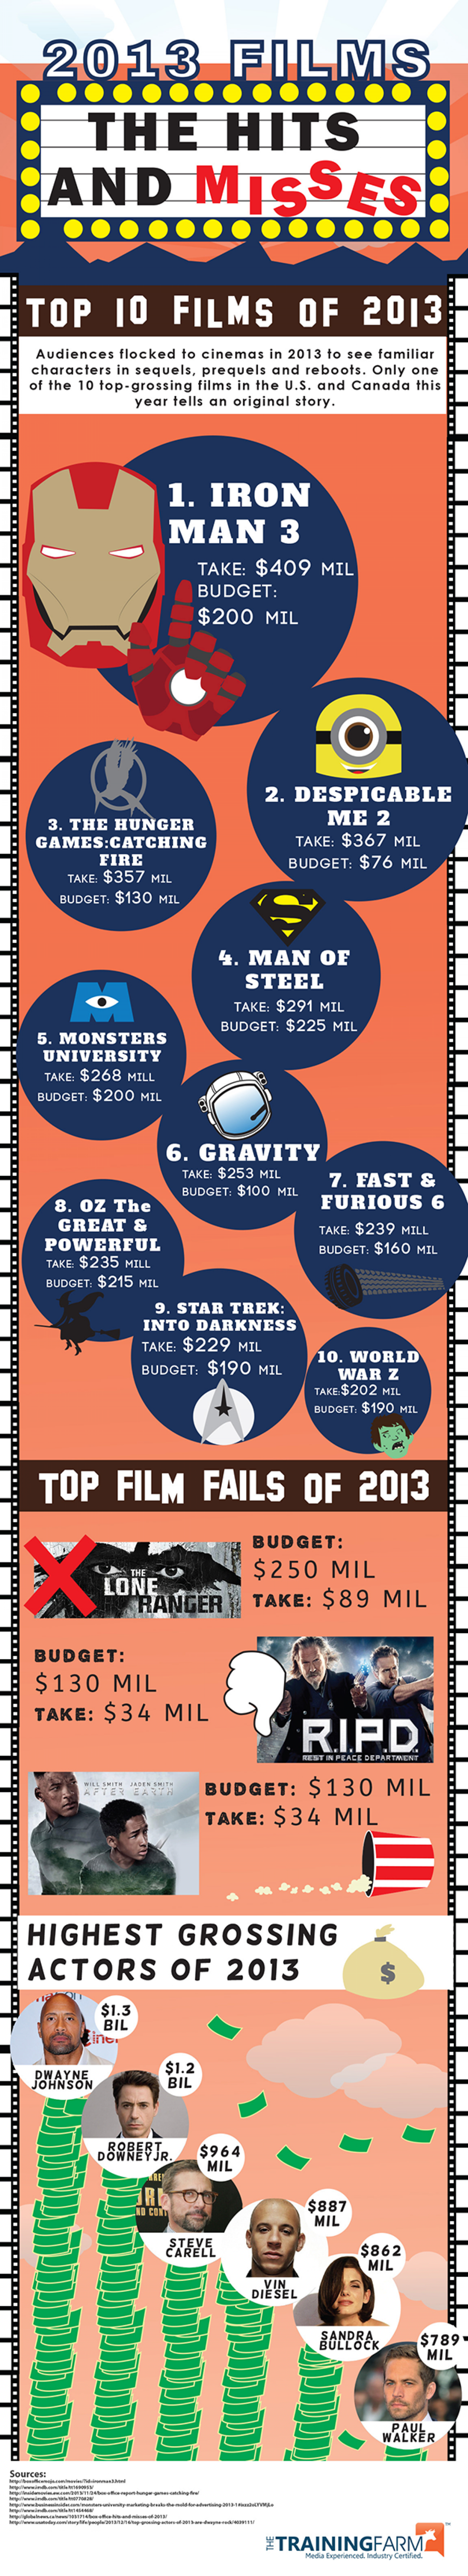 The Highs And Lows Of The Film Industry In 2013 Infographic